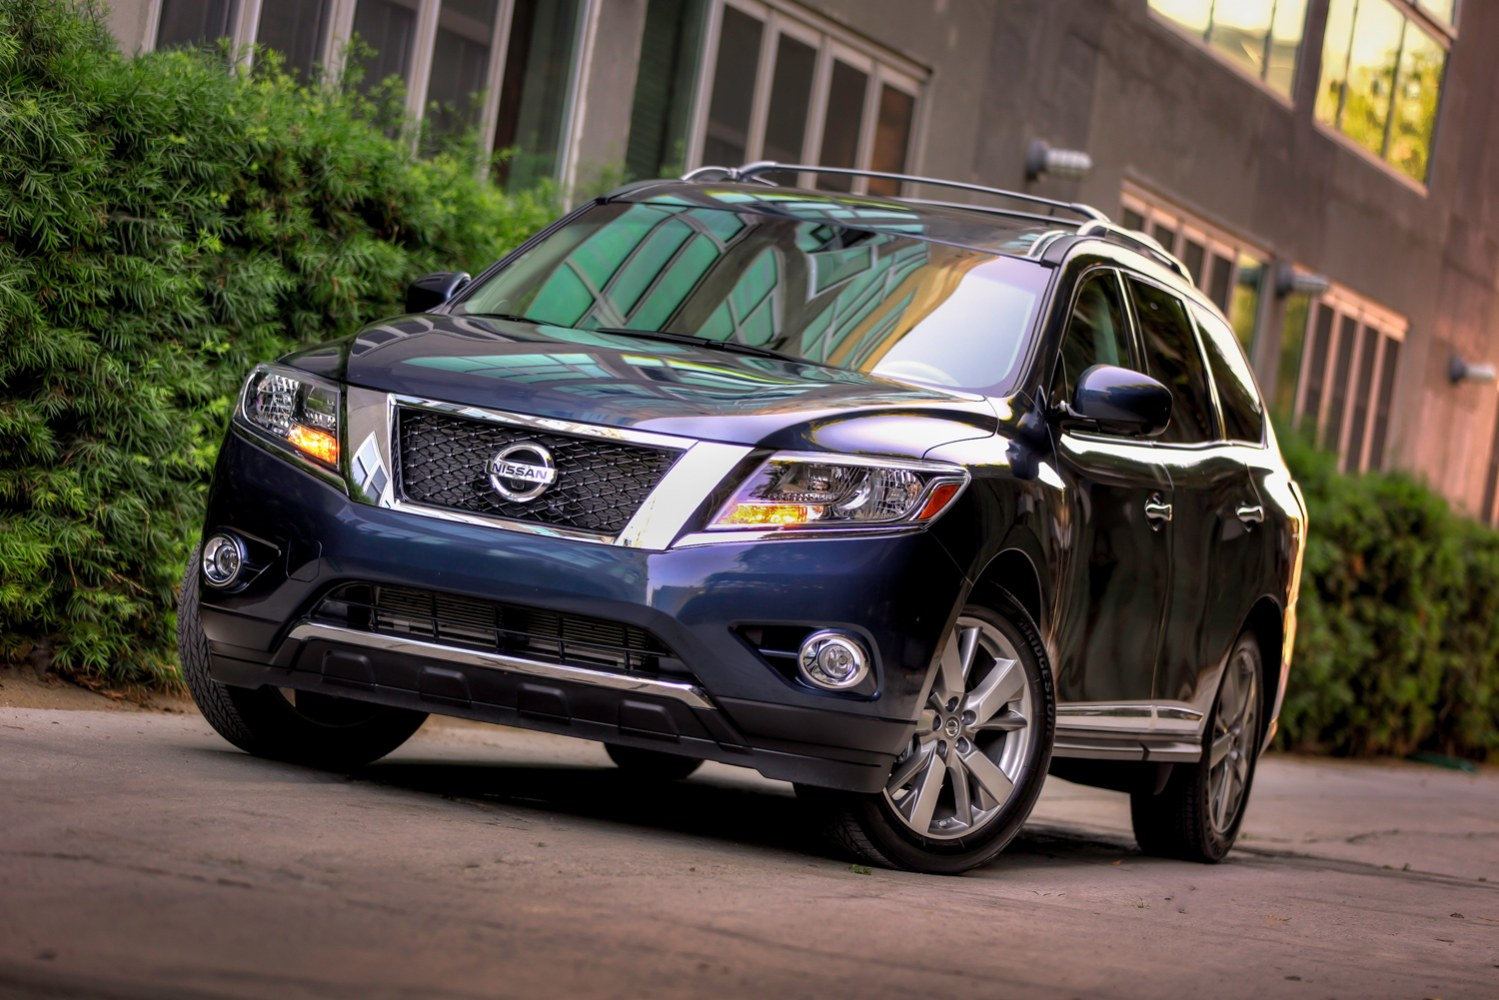 Nissan Is Trying A New Way To Cars At Some Dealerships Using Microsoft S Kinect For